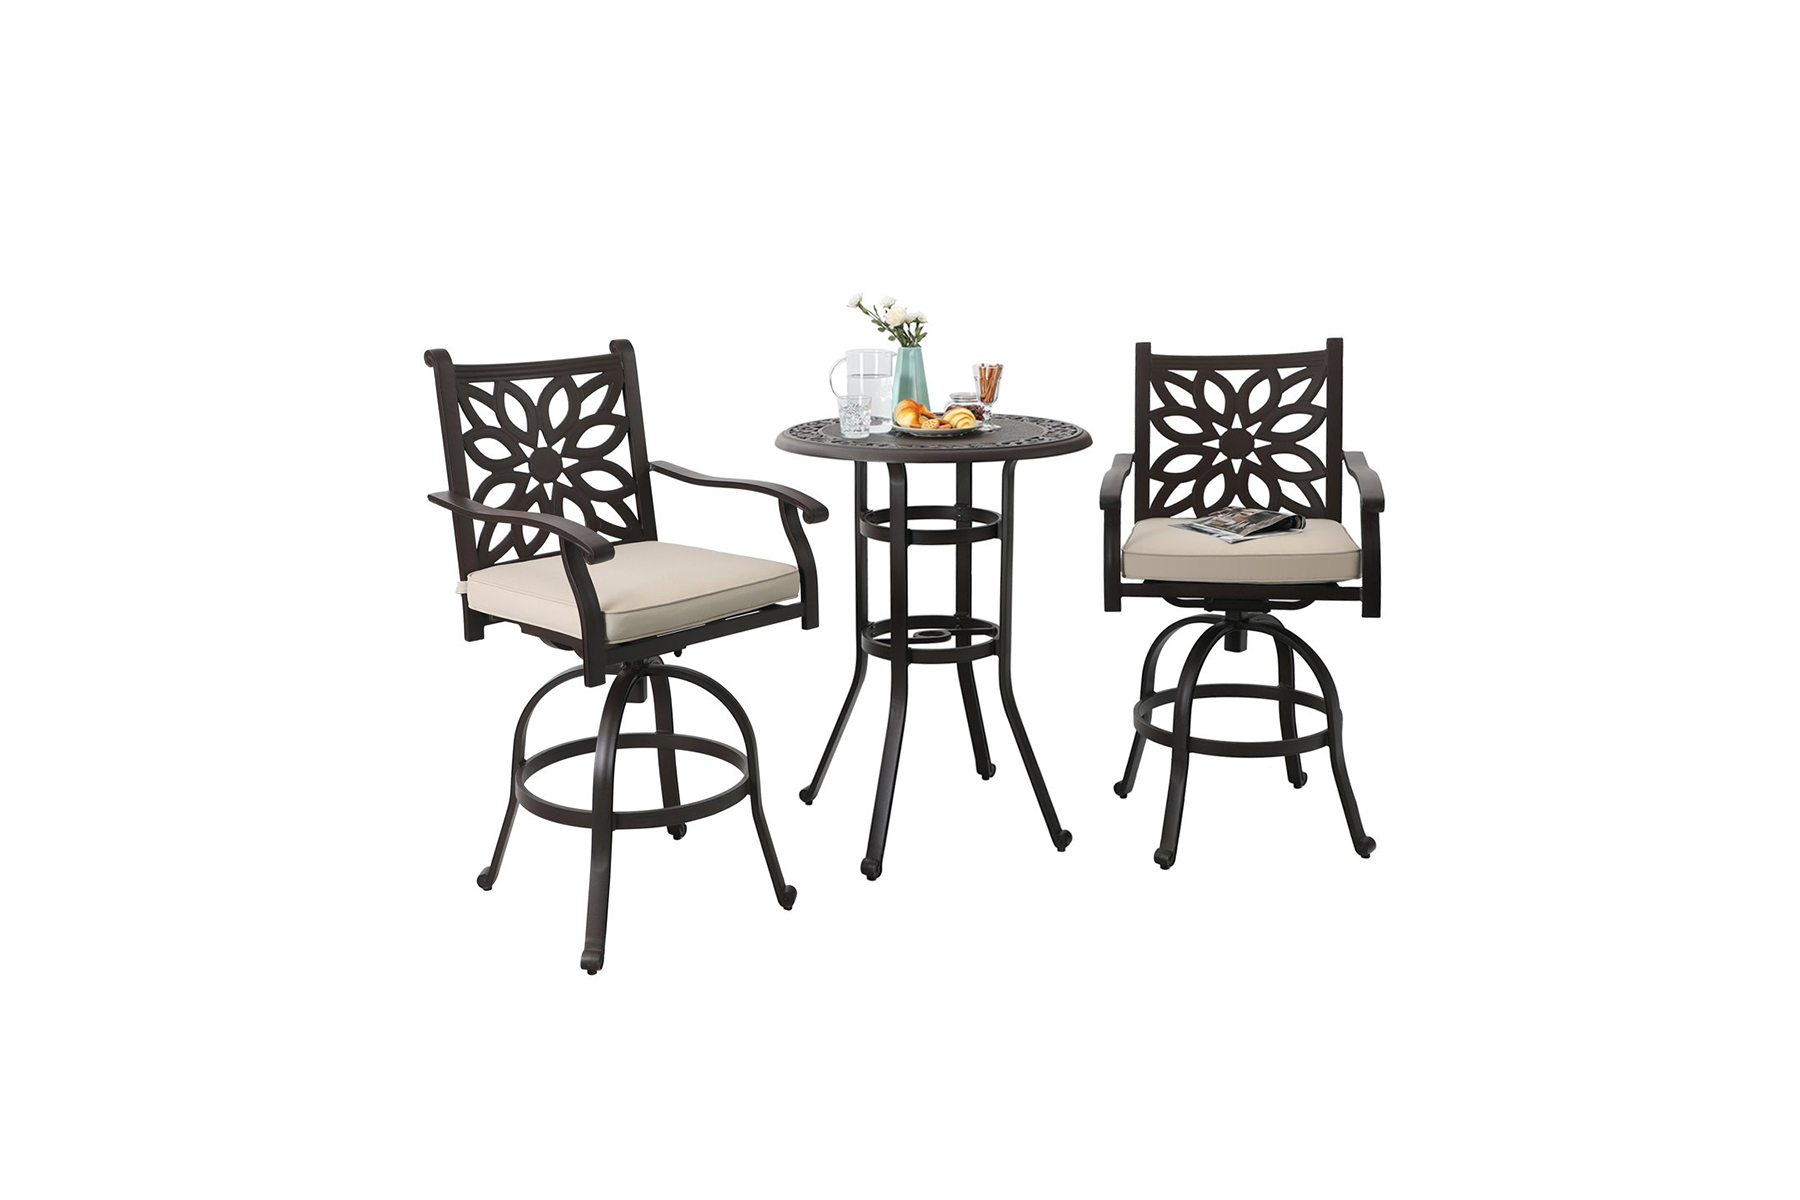 Awe Inspiring The Best Places To Buy Outdoor Furniture Online Real Simple Home Interior And Landscaping Ologienasavecom